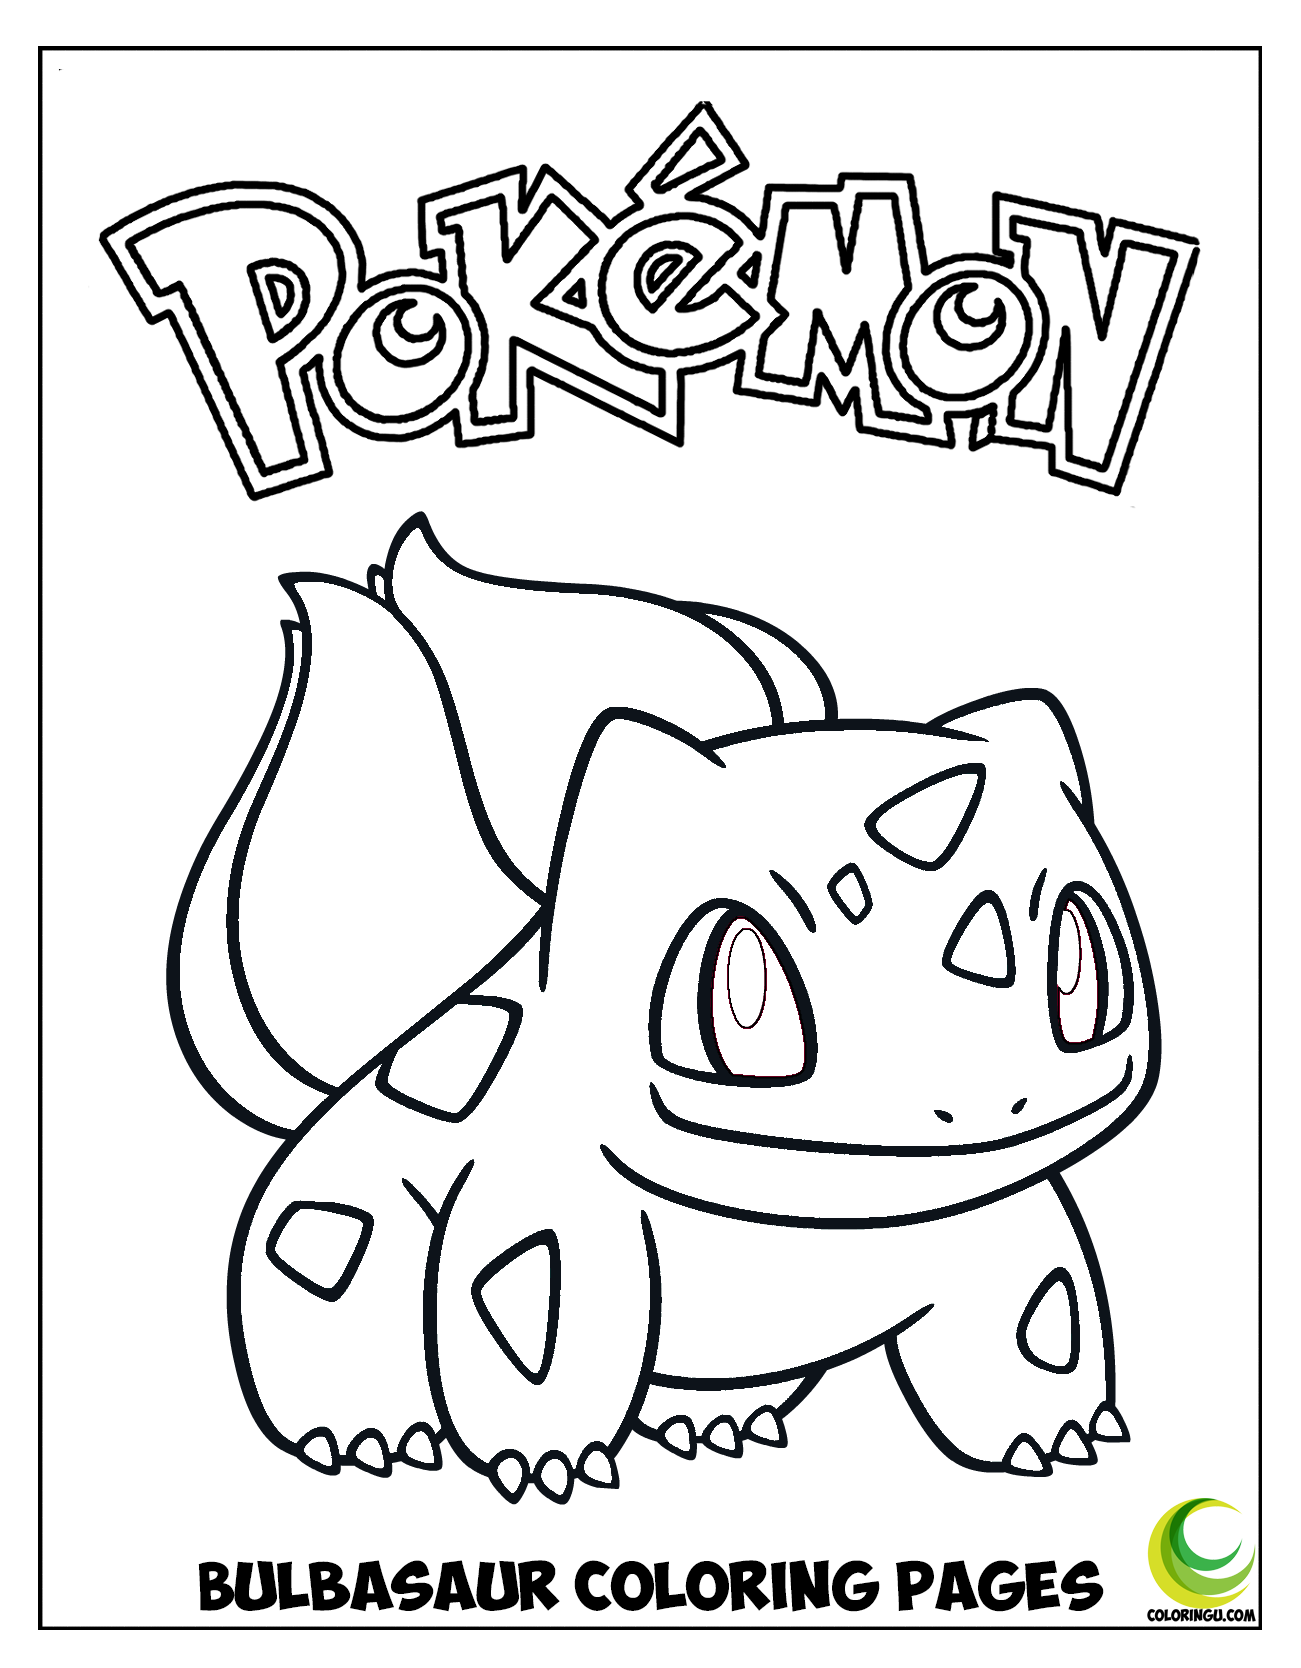 Bulbasaur Coloring Pages In 2021 Coloring Pages Pokemon Coloring Pages Superhero Coloring Pages [ 1668 x 1301 Pixel ]